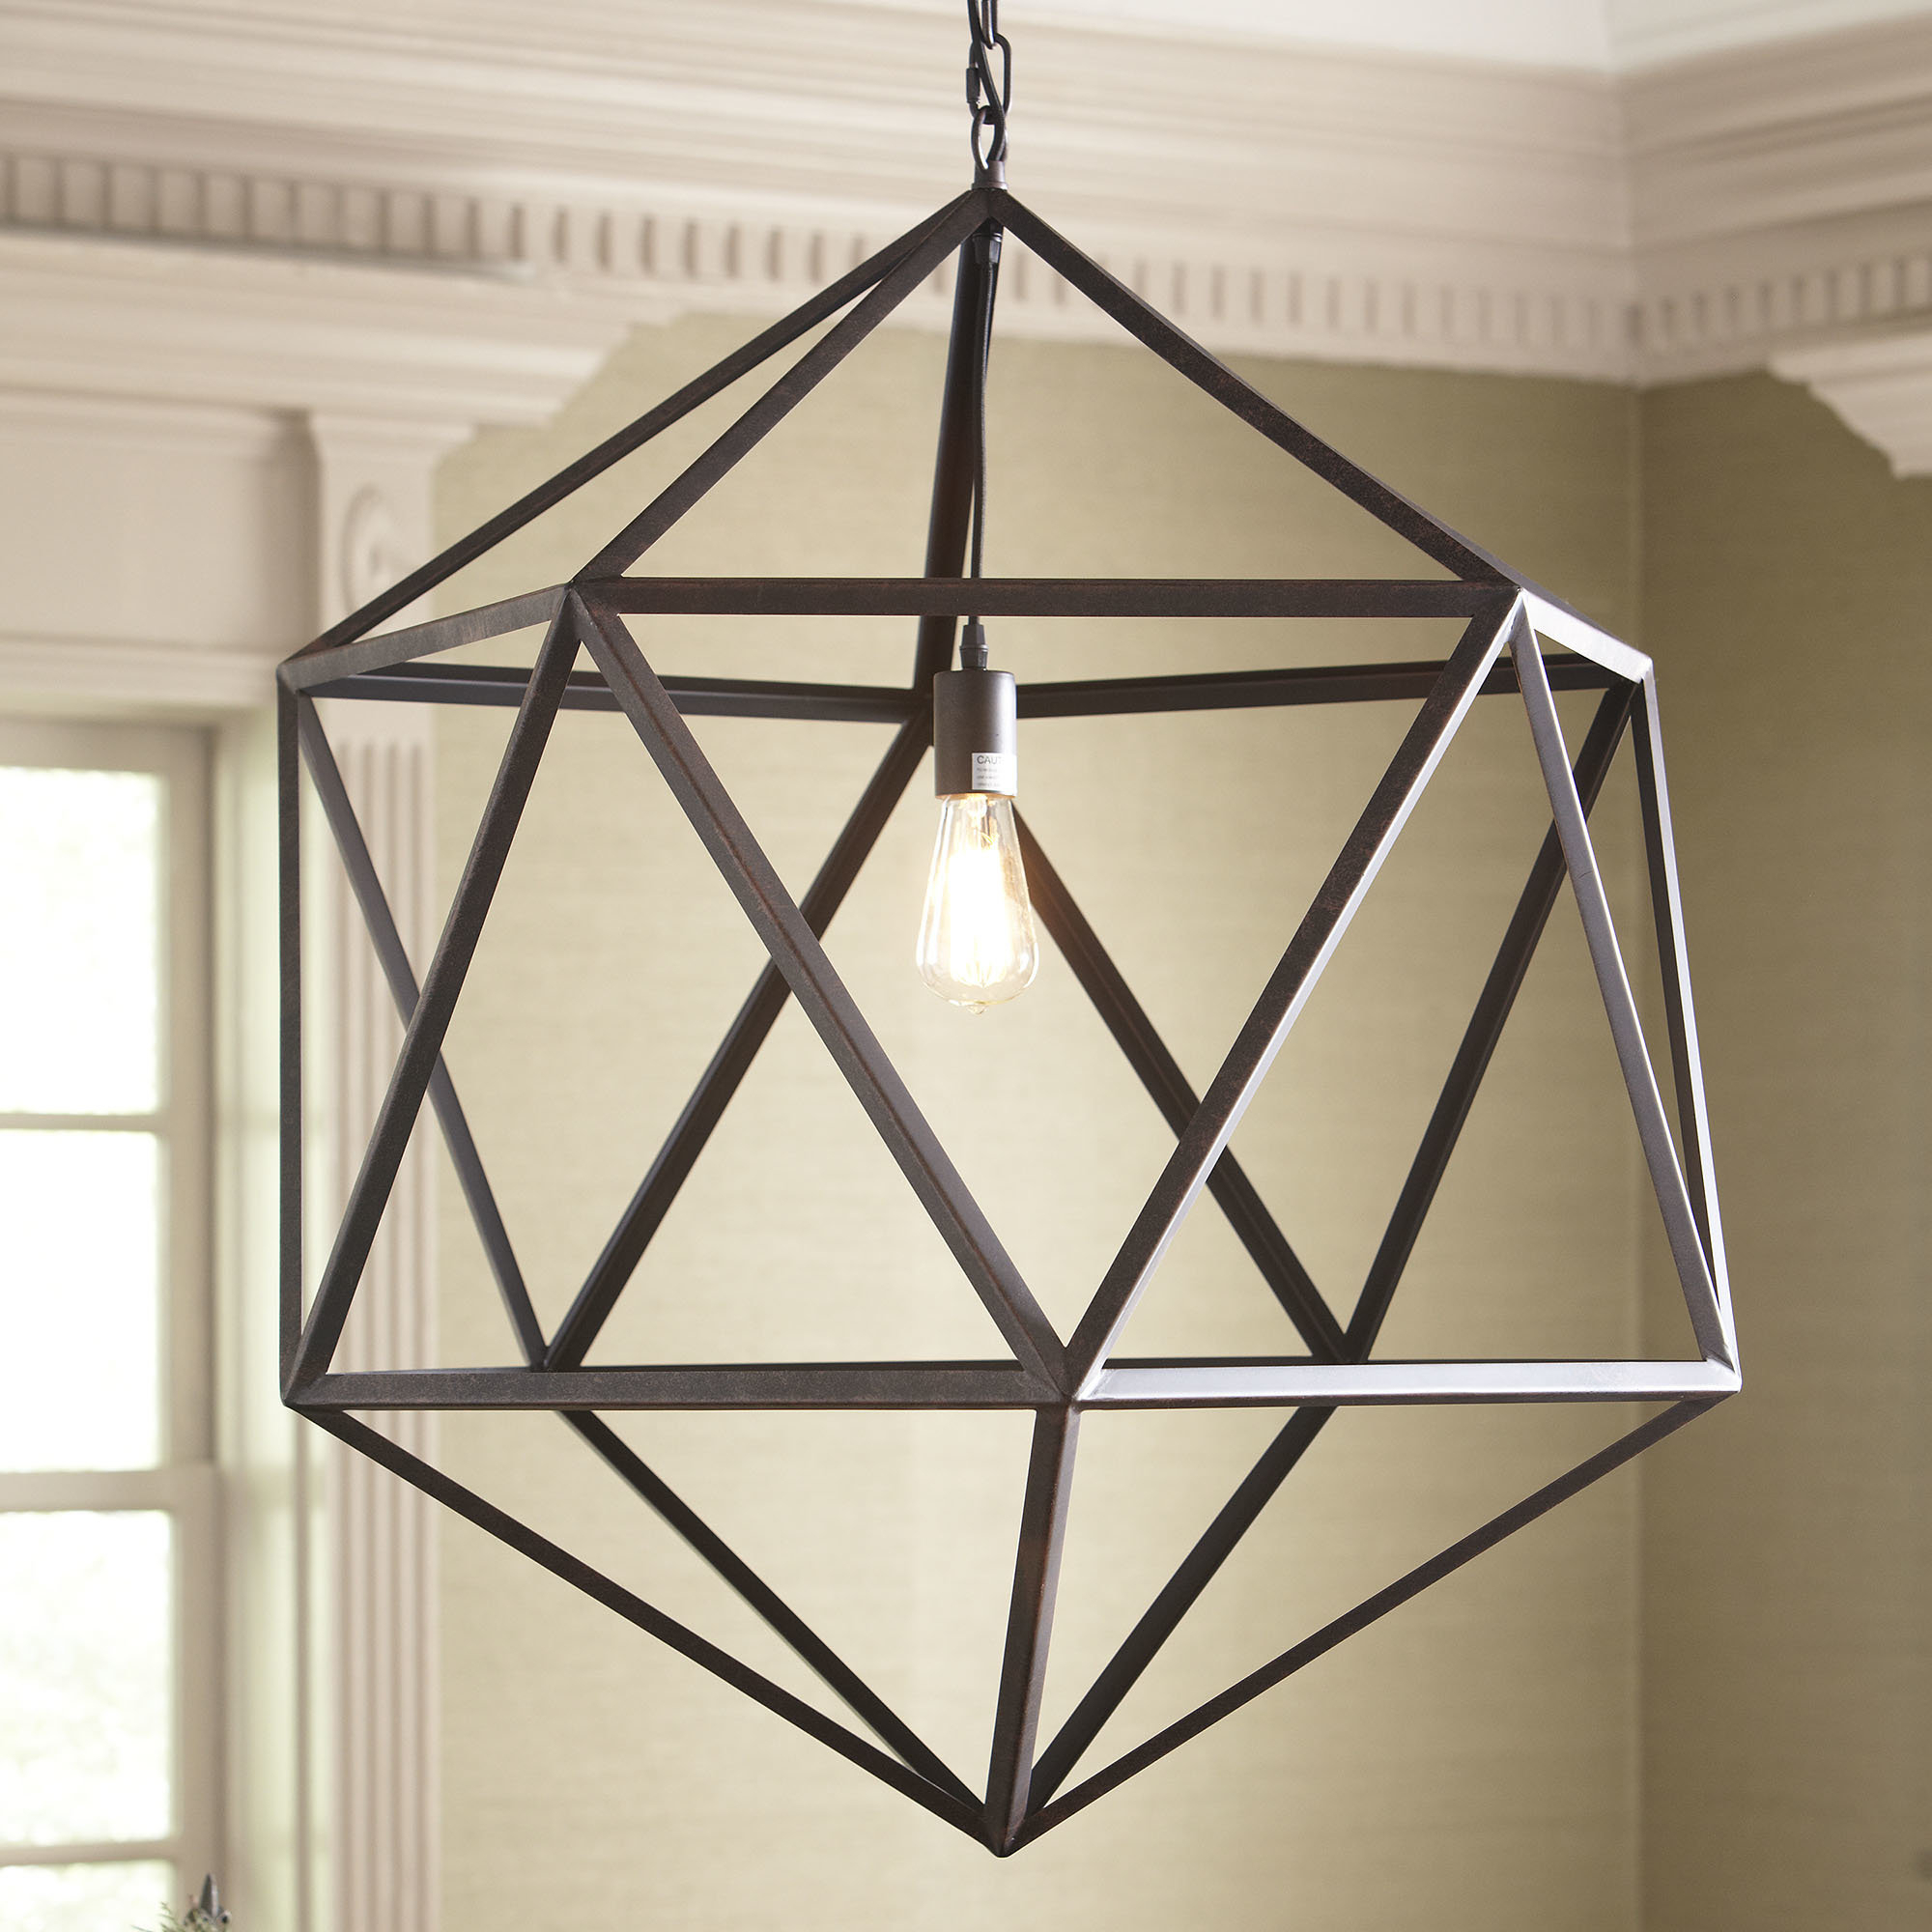 Birch Lane™ Heritage 1 Light Unique / Statement Geometric Pendant Throughout 1 Light Unique / Statement Geometric Pendants (View 5 of 30)